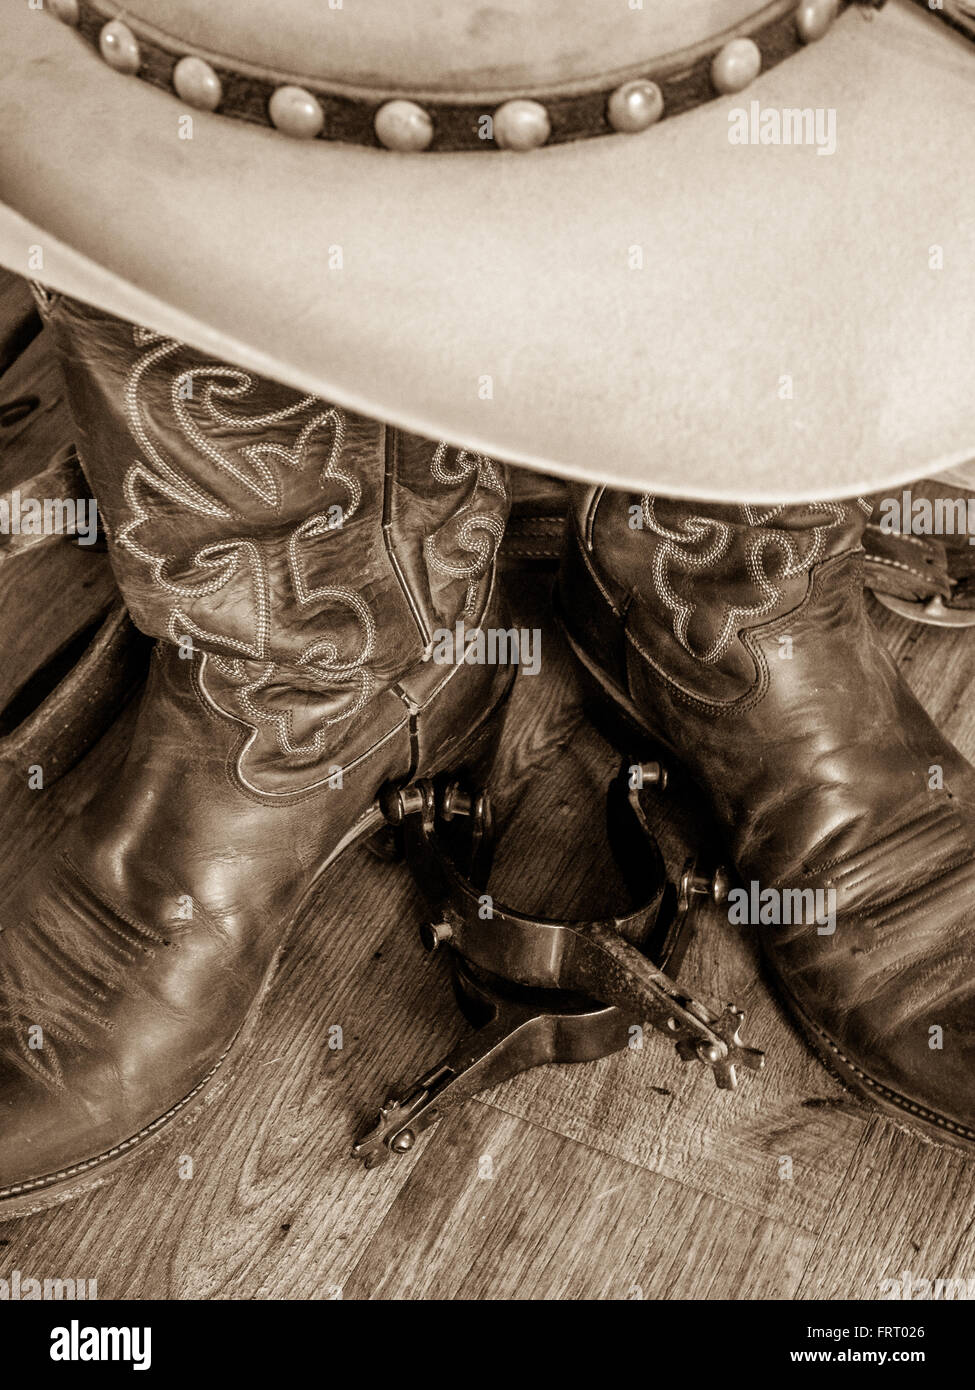 Cowboy spurs, hat and boots - Stock Image